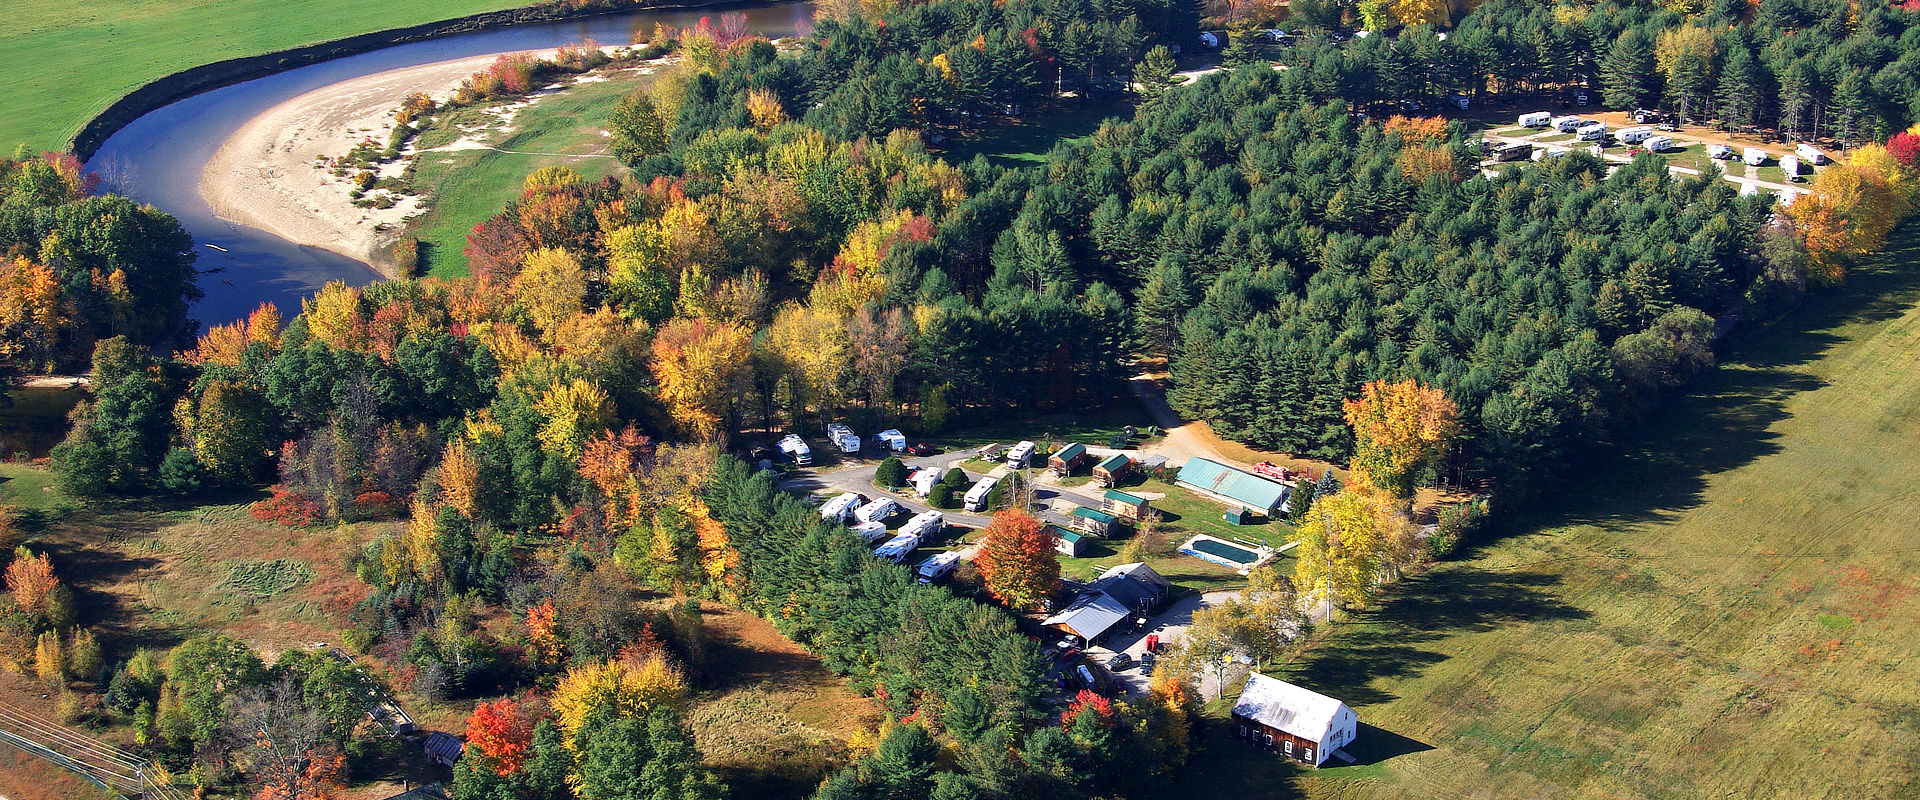 Eastern Slope Camping Area - A Campground in the North ...